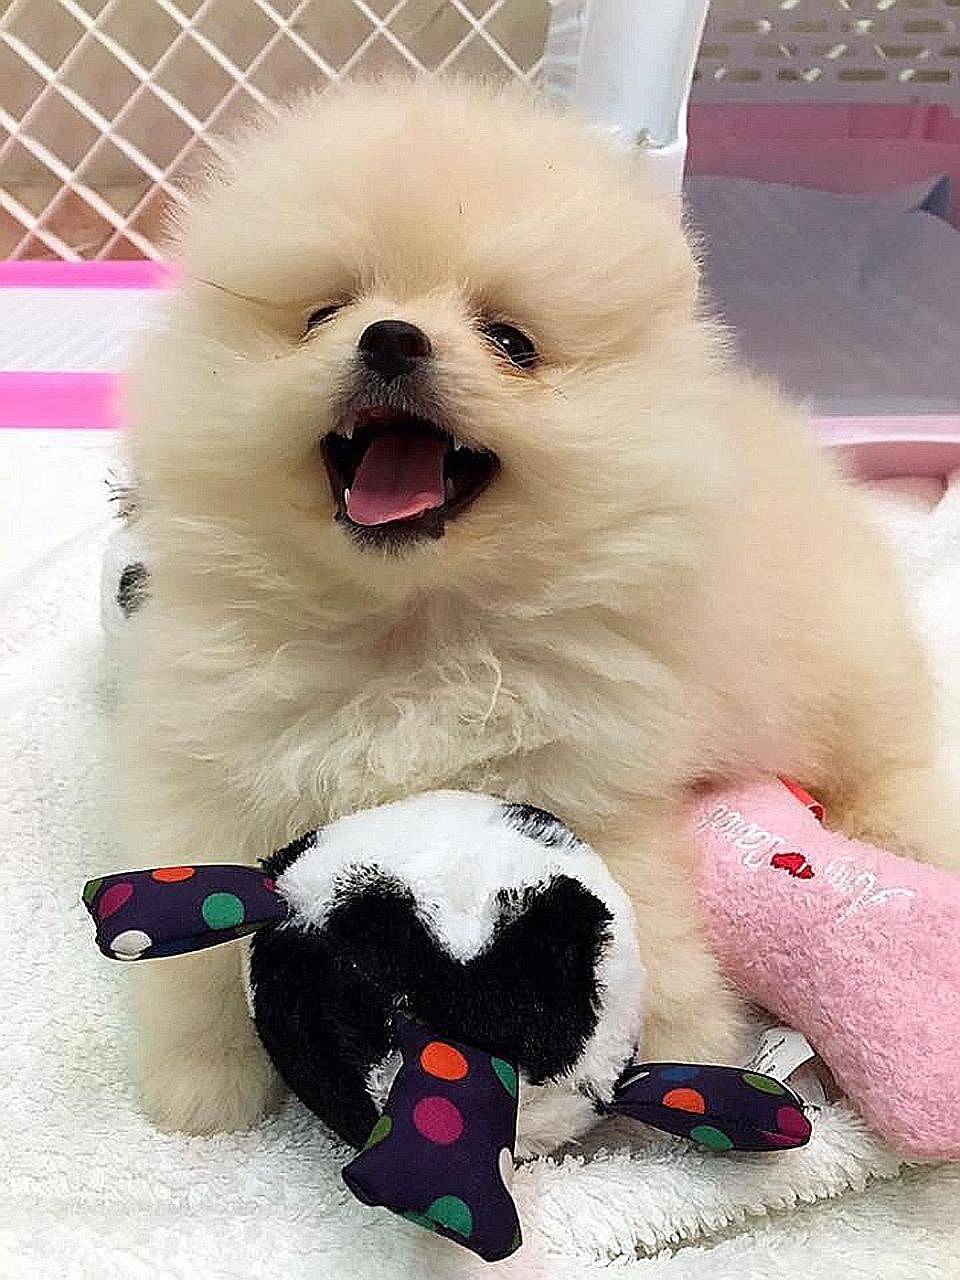 Fatty Paws customer Jorine Lim's puppy, named Mimi, a white pomeranian, died from the canine parvovirus a week after she bought it. She claims it was infected with the disease, spread through dog's faeces, while at the shop. Her Facebook post has bee